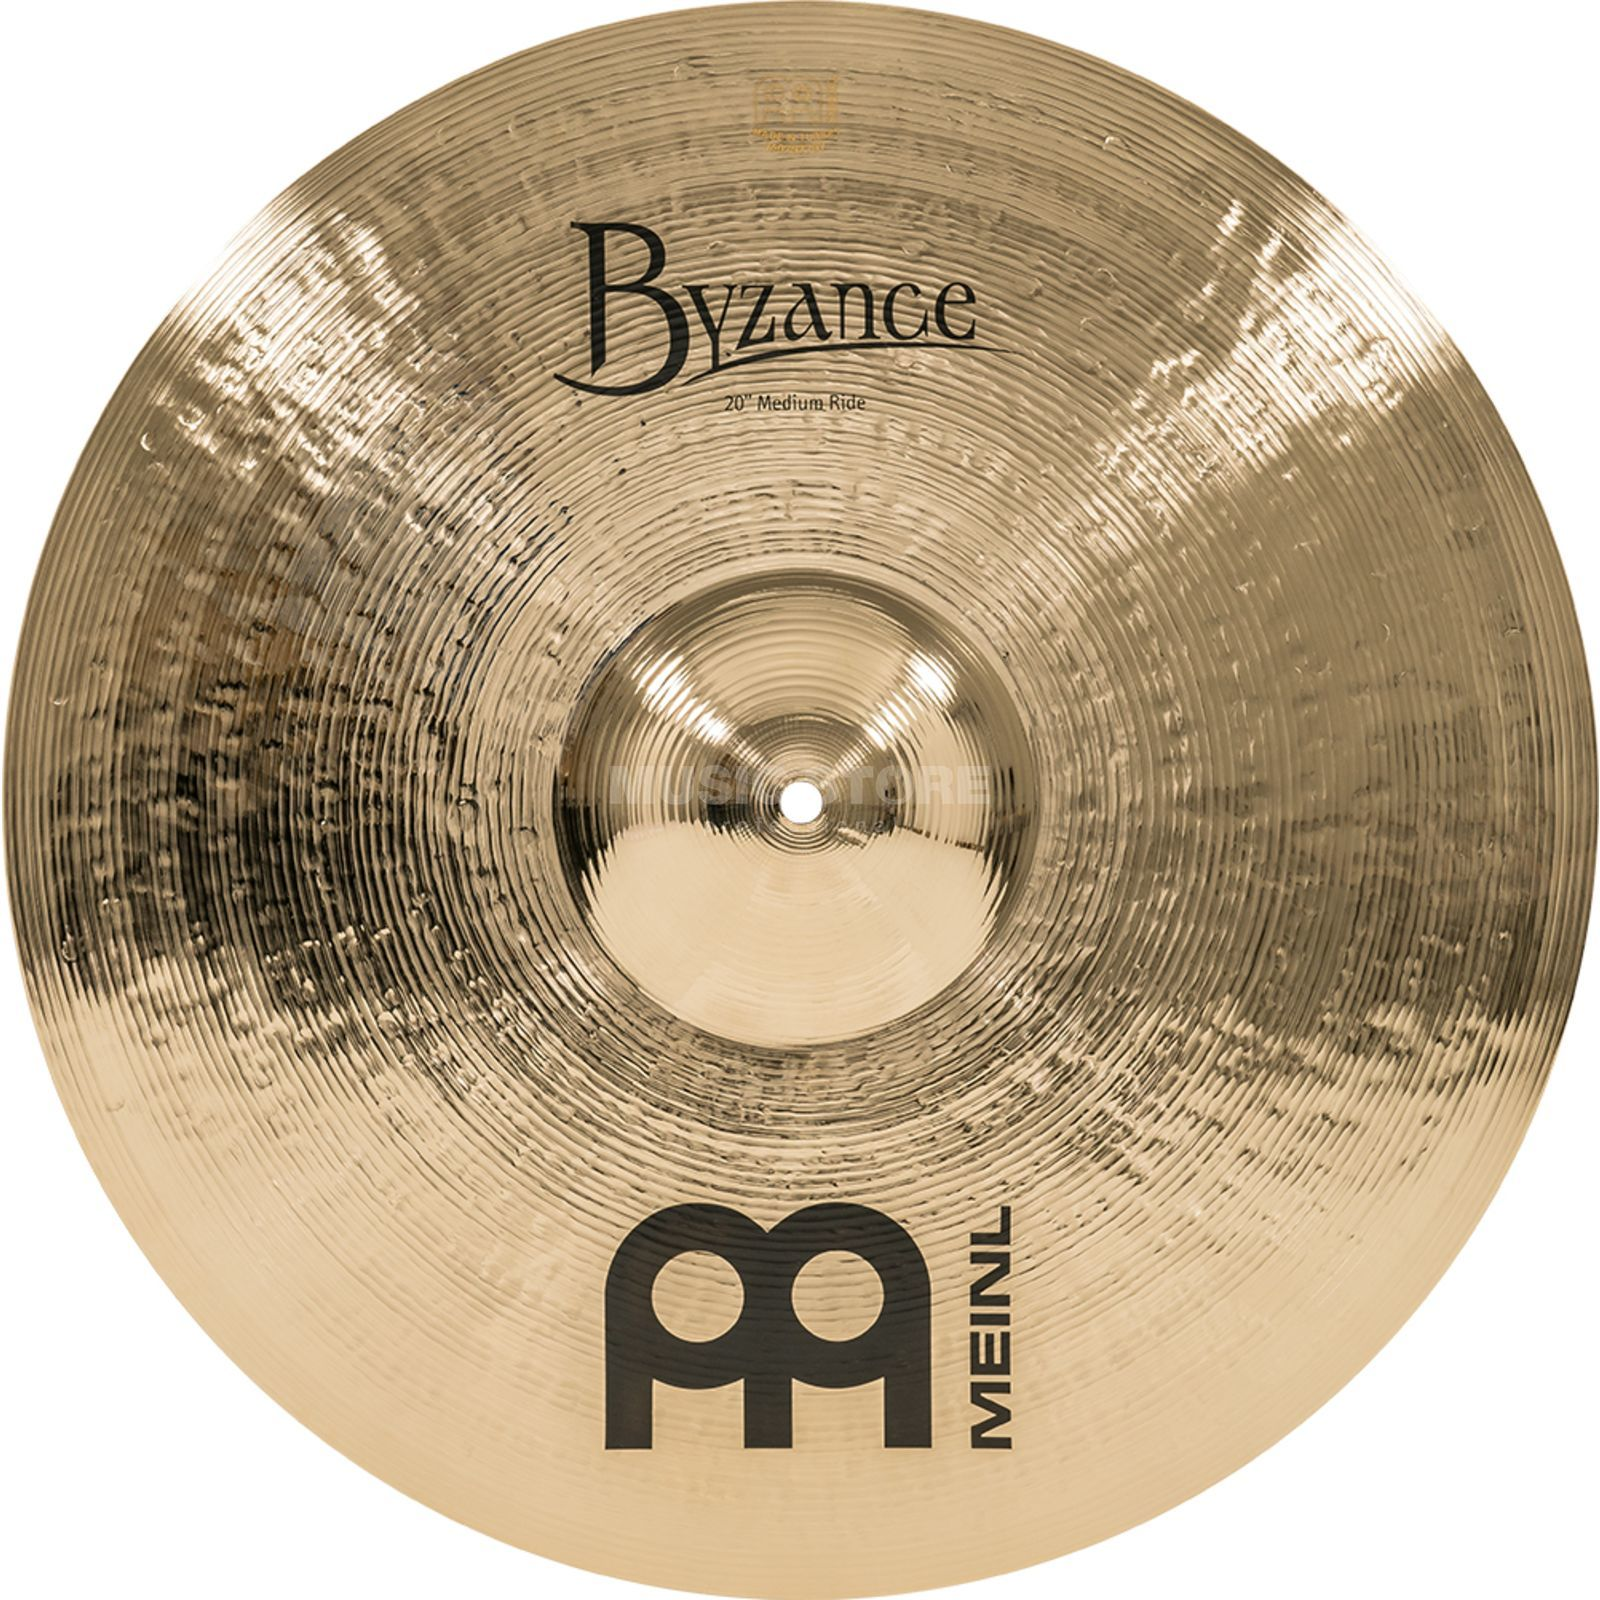 "Meinl Byzance Medium Ride 20"" B20MR-B, finition brillante Image du produit"